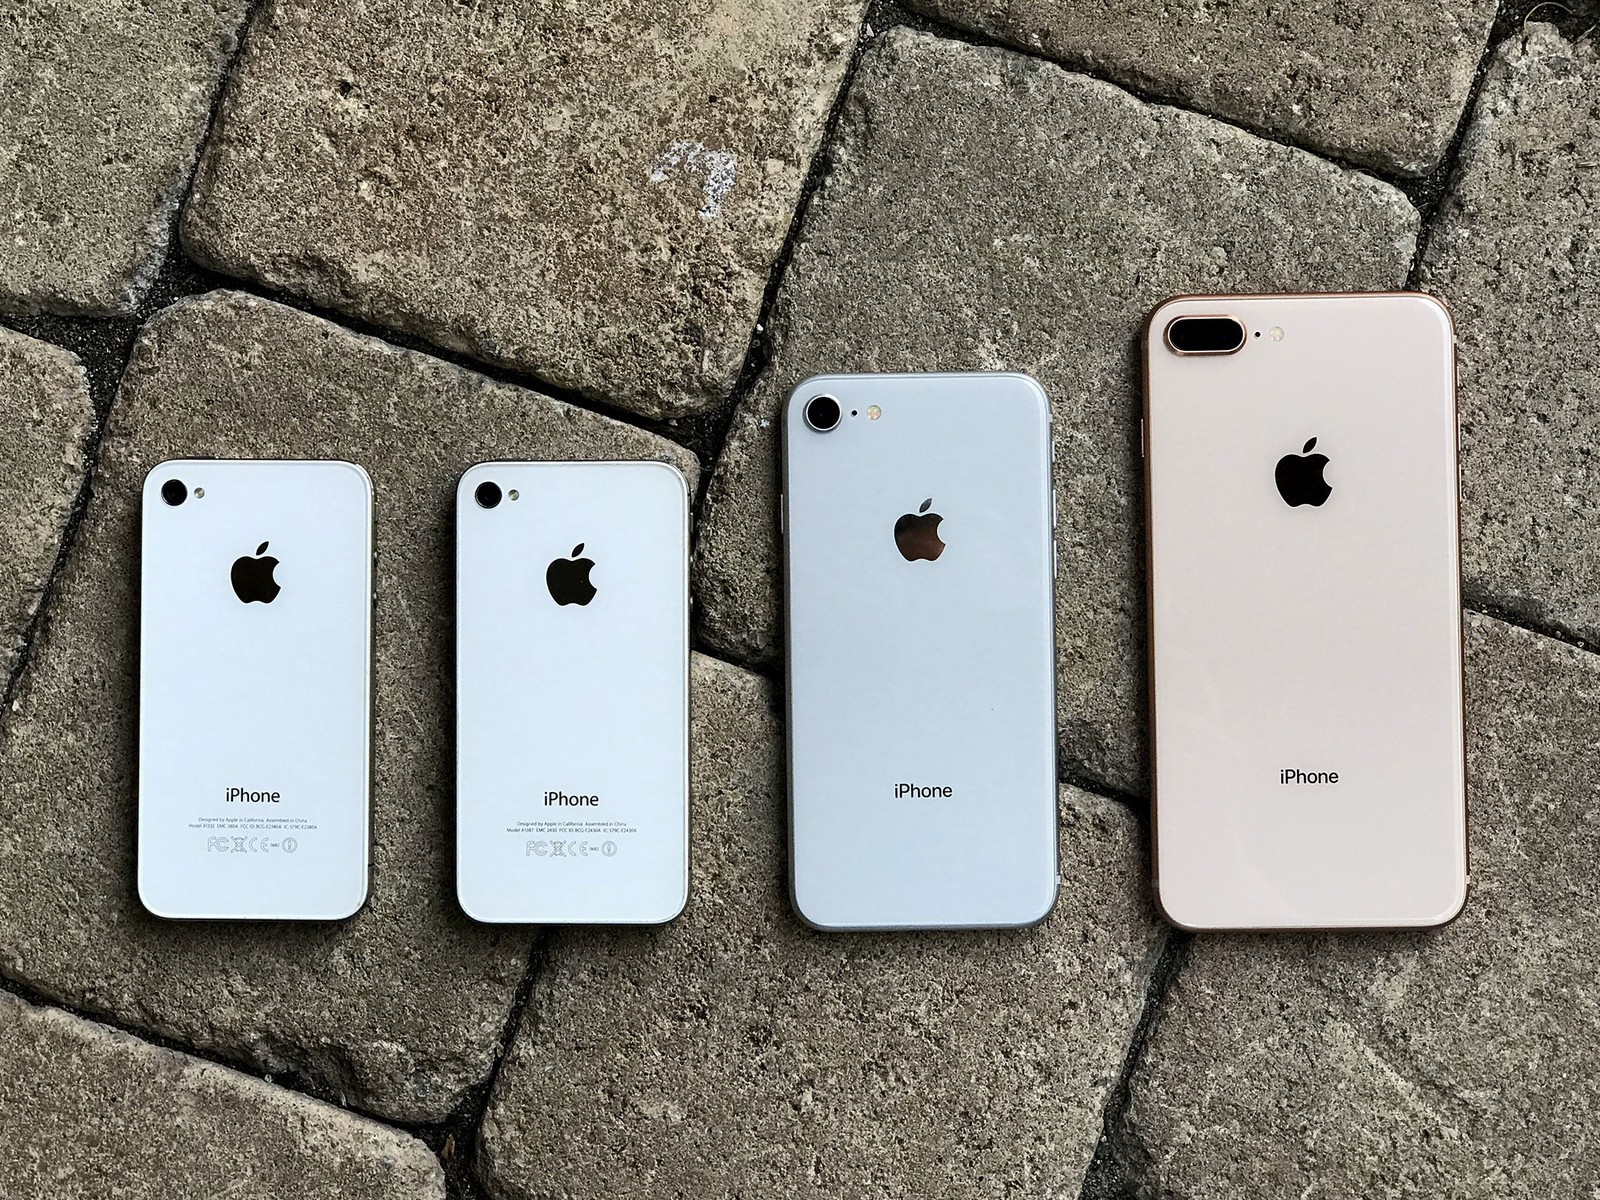 One thing that shouldnt worry anyone anymore is the idea that the white faceplate on the silver or gold iphone could get stained or otherwise discolored